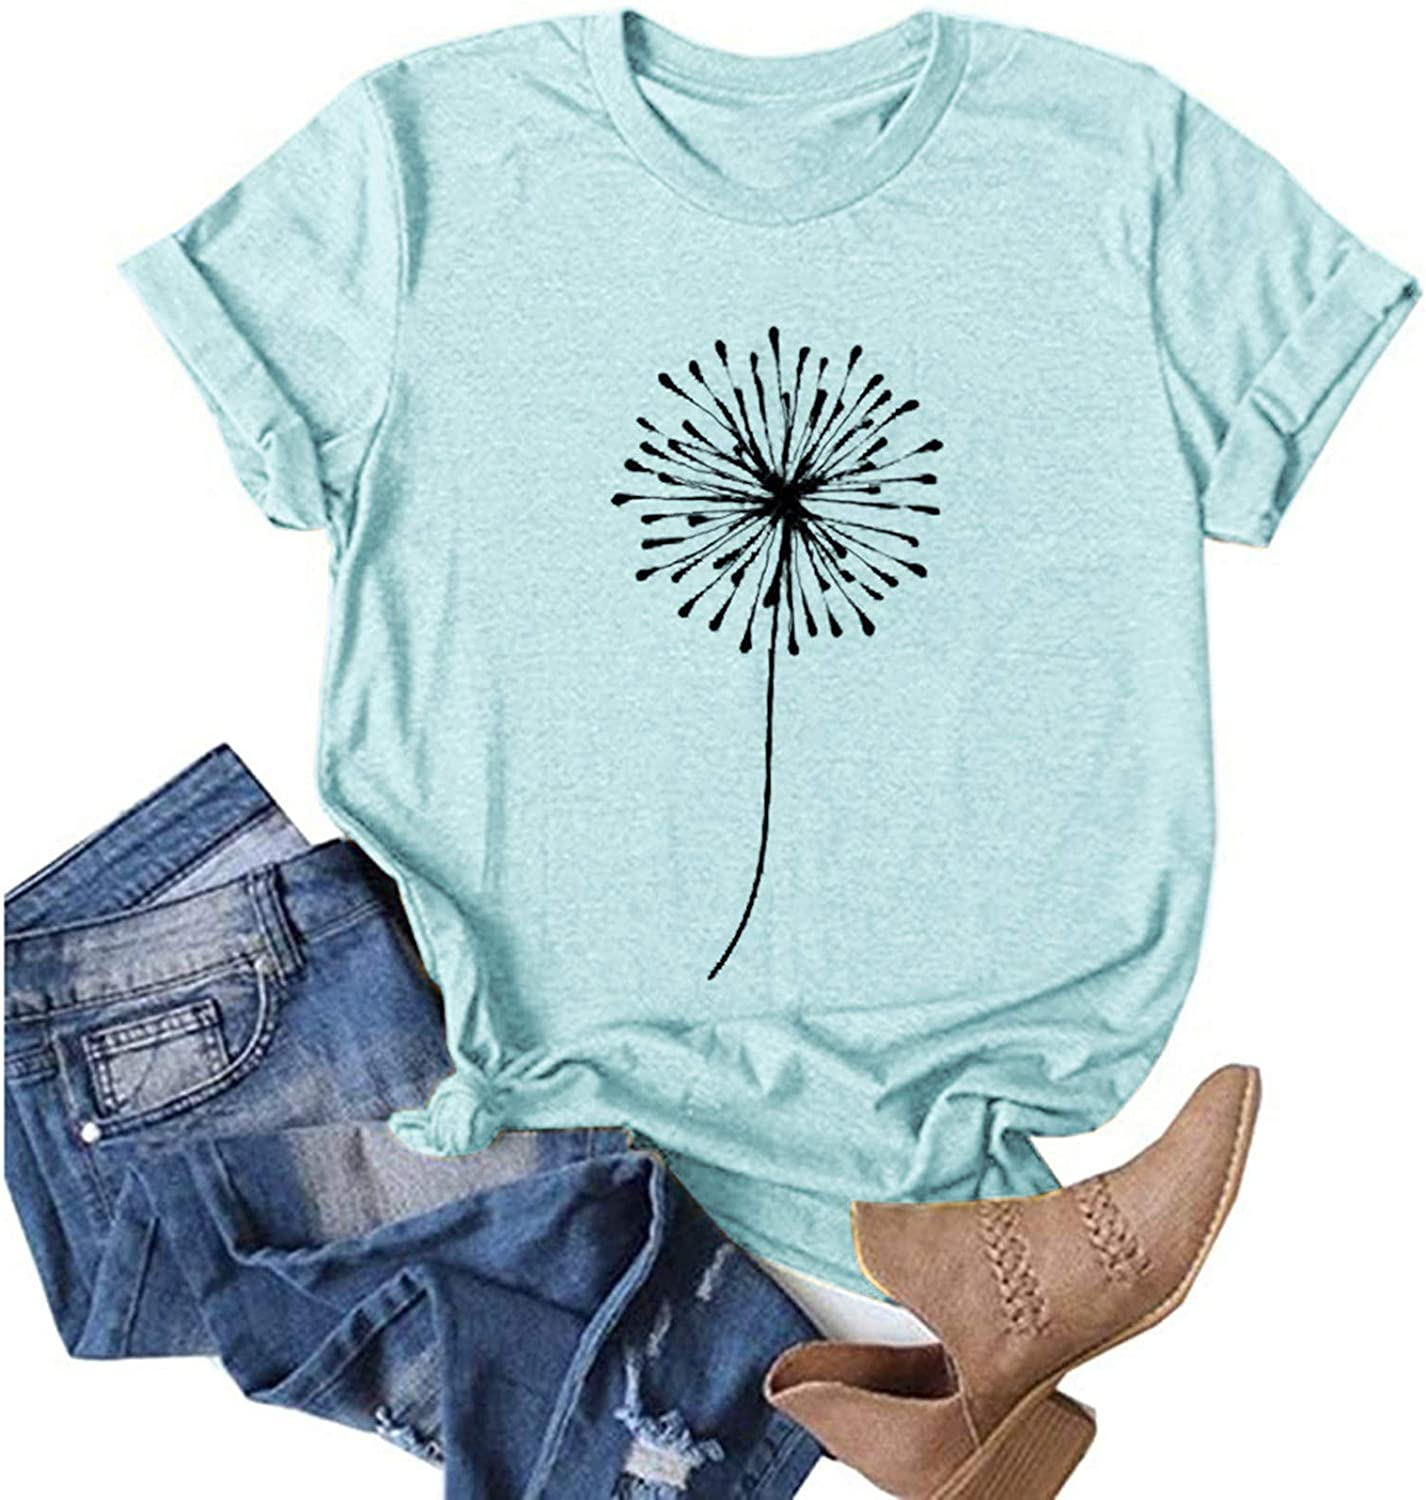 UOCUFY Womens Short Sleeve Tops, Womens Casual Summer Loose Fit Crewneck Graphic Tees Tunics Blouses Tops T Shirts